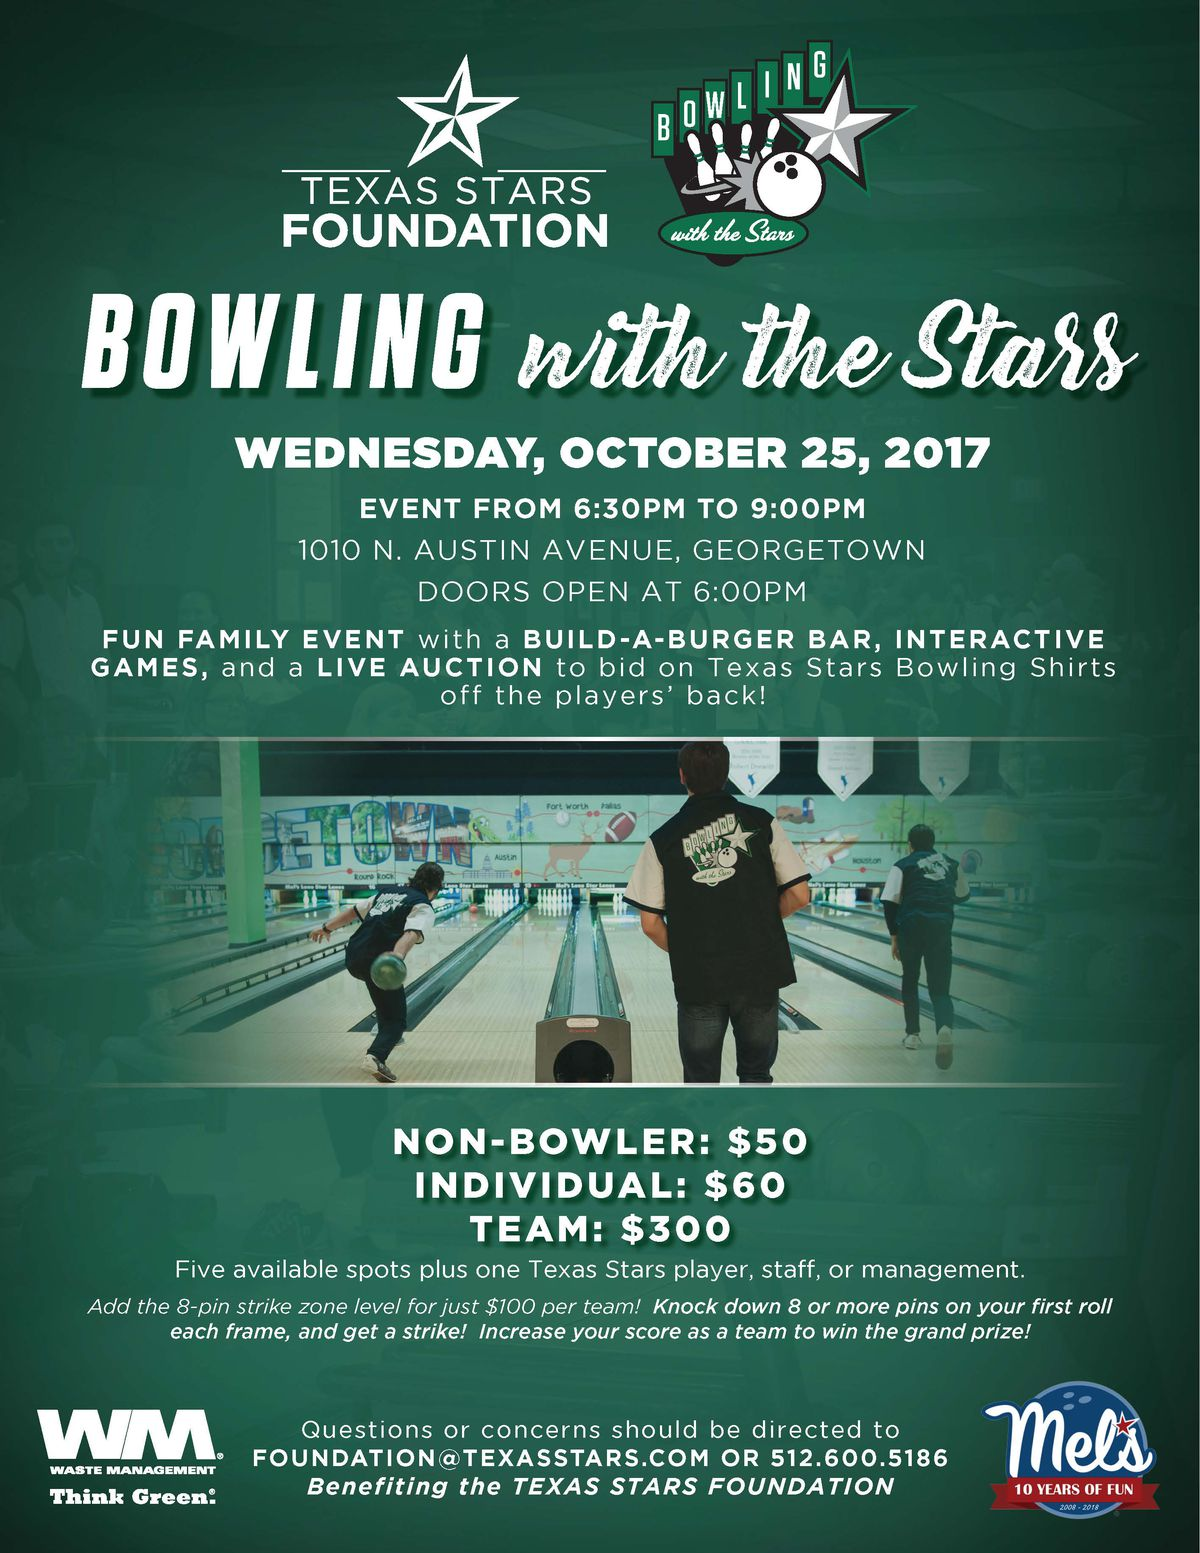 Texas Stars Bowling With the Stars 2017